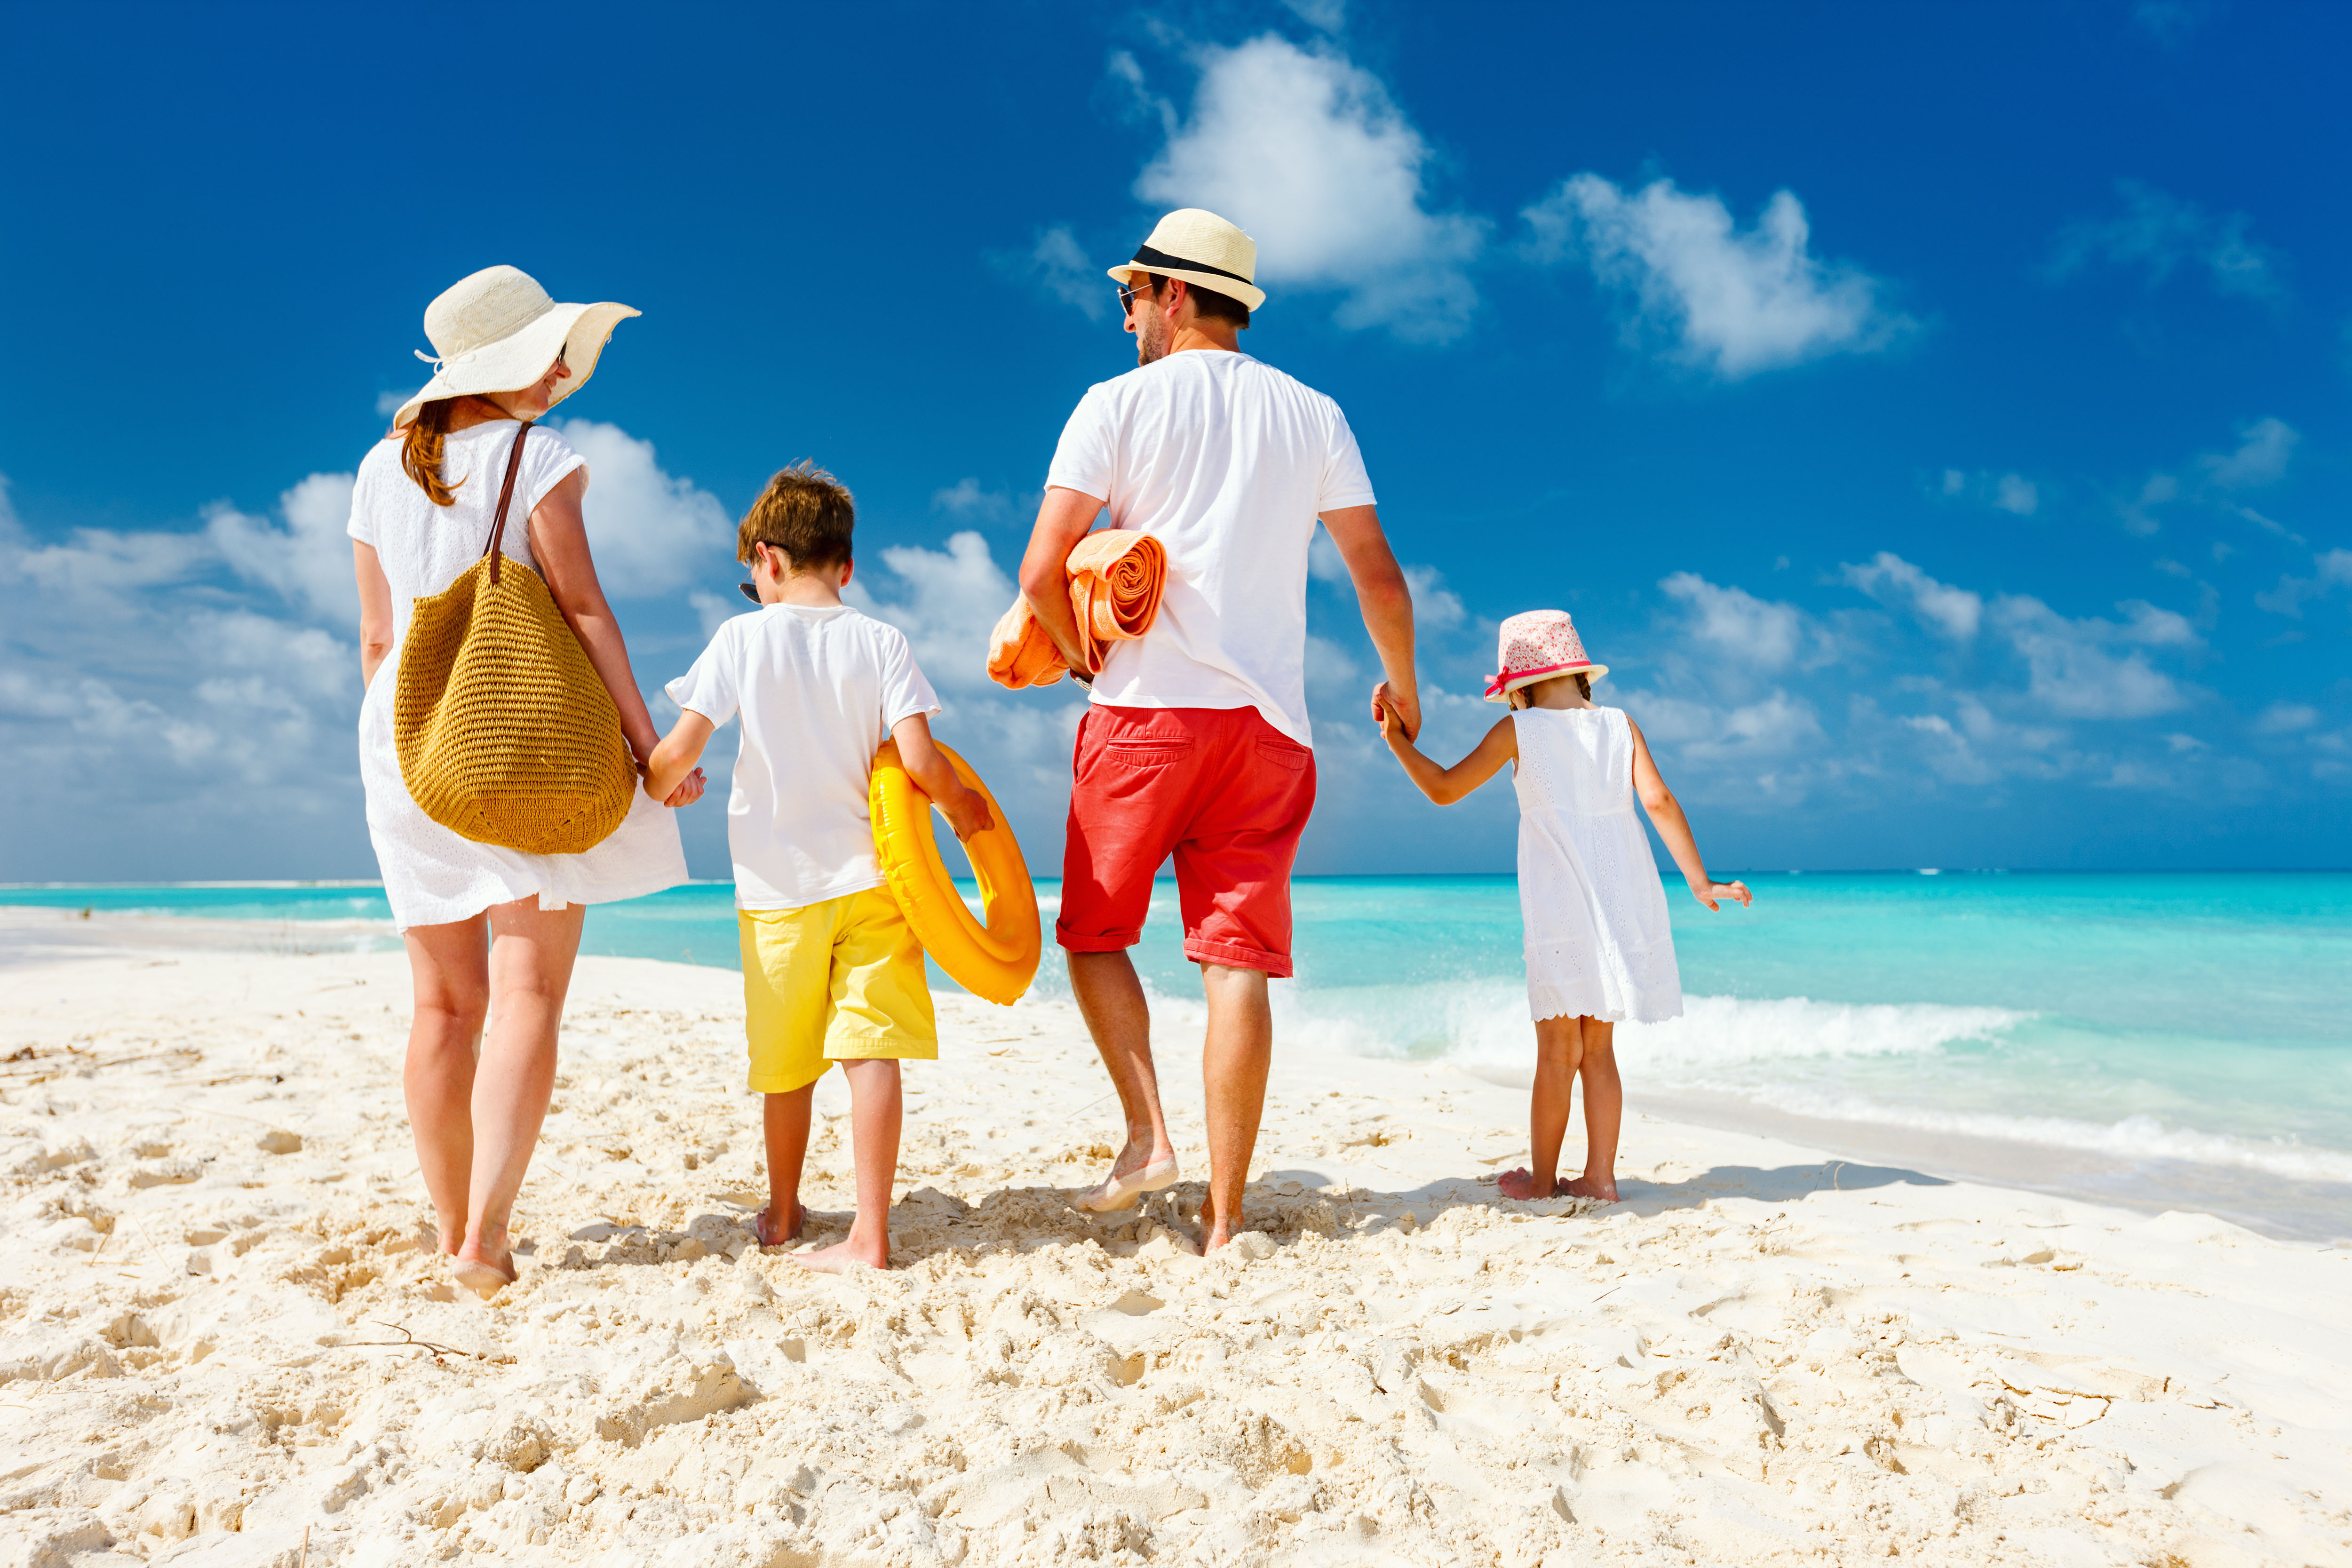 shutterstock 740240464 - Going on Vacation: Should You Turn Off the Water Before Leaving?